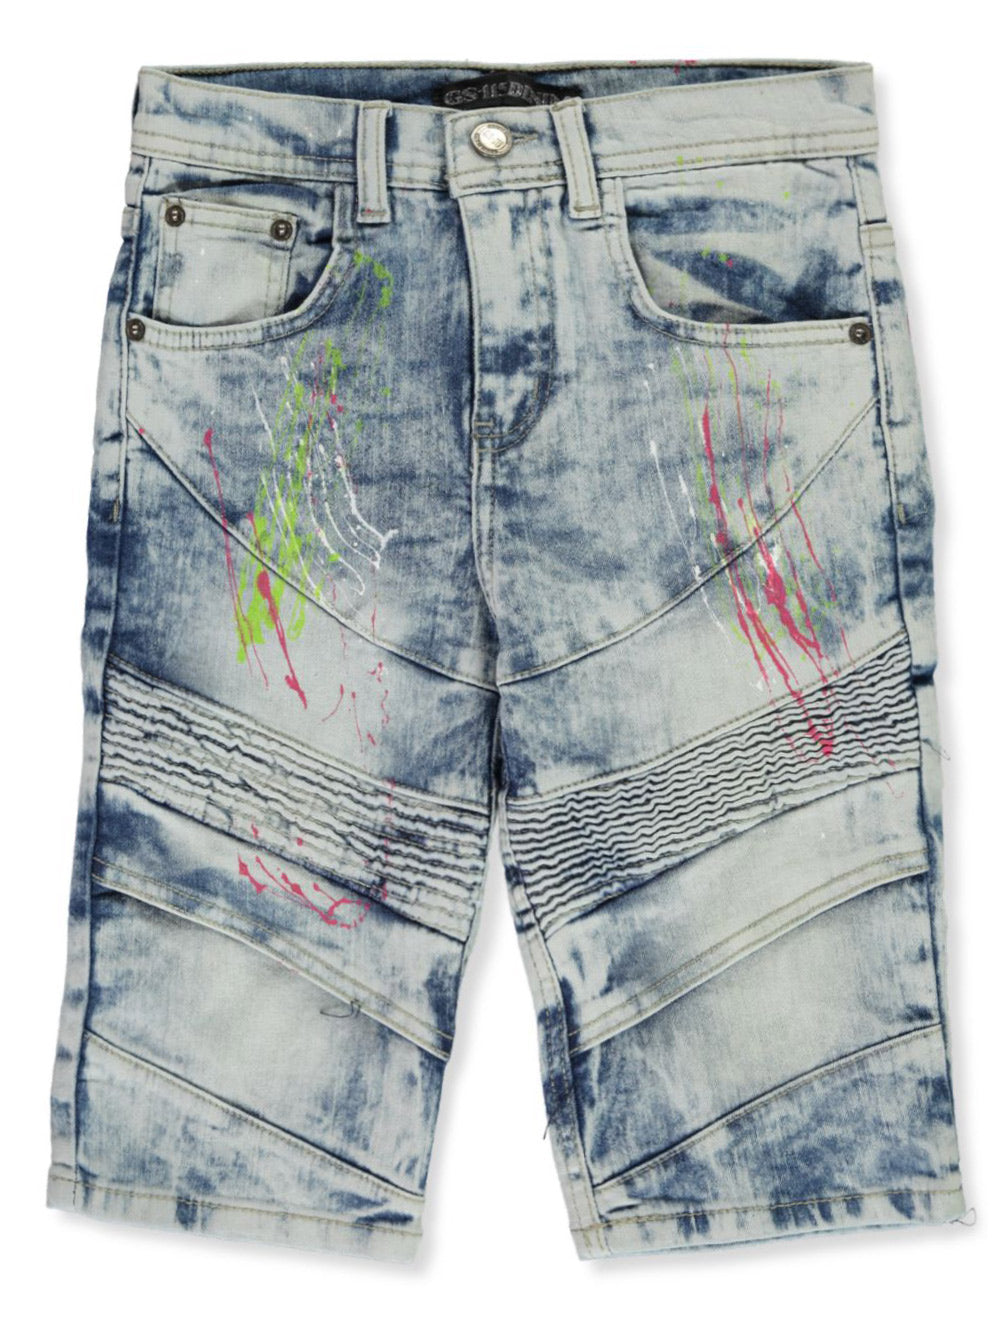 Paint Splatter Denim Shorts - FLY GUYZ